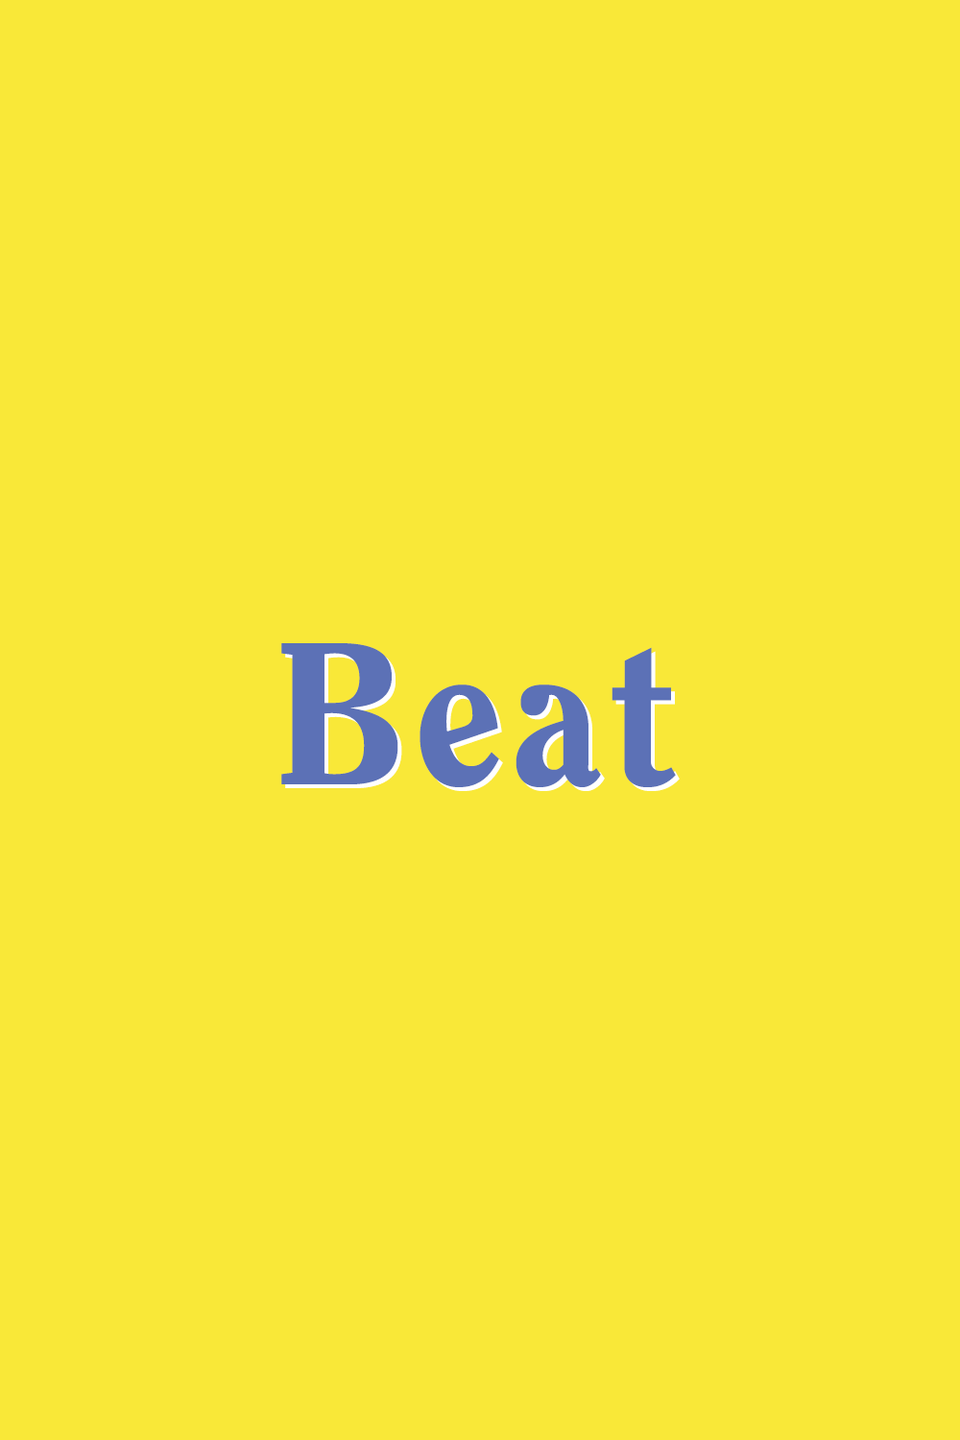 "<p>This slang term isn't as aggressive as it sounds. ""Beat"" can be used as a verb or adjective, and it's all about beauty. To beat is to <a href=""https://www.oprahdaily.com/beauty/skin-makeup/a22985669/how-to-apply-highlighter/"" rel=""nofollow noopener"" target=""_blank"" data-ylk=""slk:apply makeup"" class=""link rapid-noclick-resp"">apply makeup</a>, and if someone is described as being ""beat,"" it means they either applied their makeup well, or just applied a lot of it. Used in a sentence as a verb: ""I have to meet the parents tonight so I'm going to beat my face."" You'll find examples of ""beat"" in the <a href=""https://www.oprahdaily.com/life/a23601818/queer-cultural-appropriation-definition/"" rel=""nofollow noopener"" target=""_blank"" data-ylk=""slk:ball culture"" class=""link rapid-noclick-resp"">ball culture</a> documentary<em> <a href=""https://www.amazon.com/Paris-Burning-Jennie-Livingston/dp/B007QJ89VU?tag=syn-yahoo-20&ascsubtag=%5Bartid%7C10070.g.36318291%5Bsrc%7Cyahoo-us"" rel=""nofollow noopener"" target=""_blank"" data-ylk=""slk:Paris Is Burning"" class=""link rapid-noclick-resp"">Paris Is Burning</a>.</em></p>"